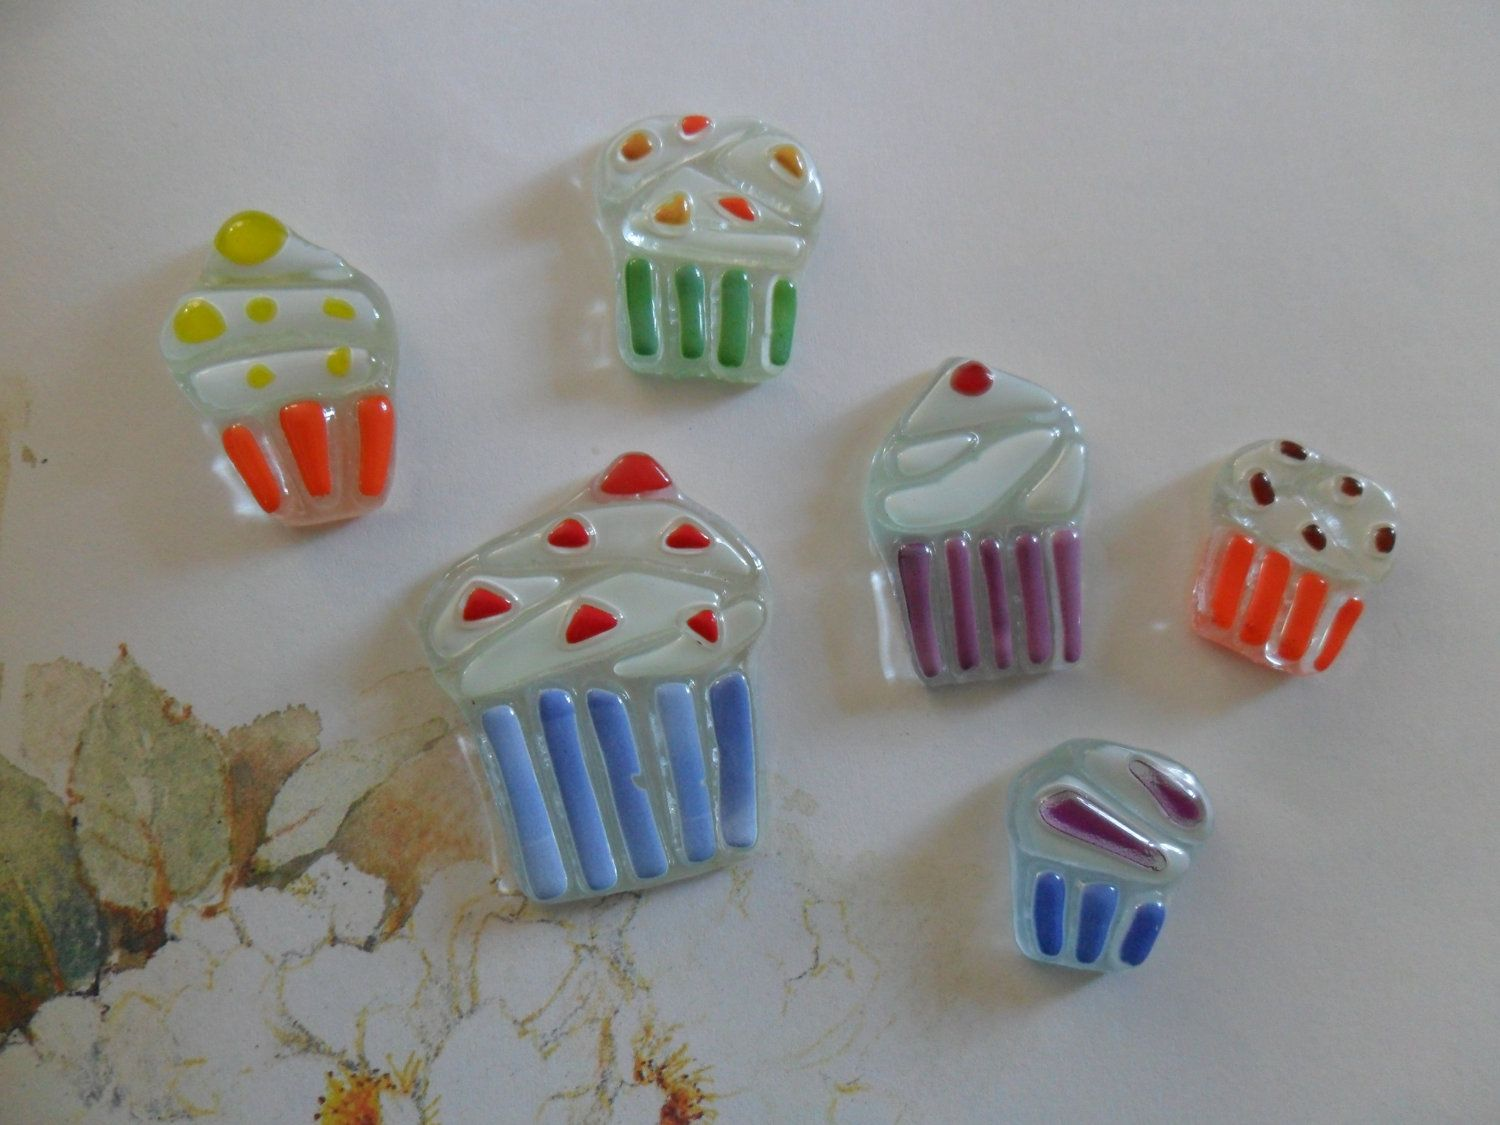 Cupcakes, fused glass tiles, handmade for mosaic, art glass, craft projects